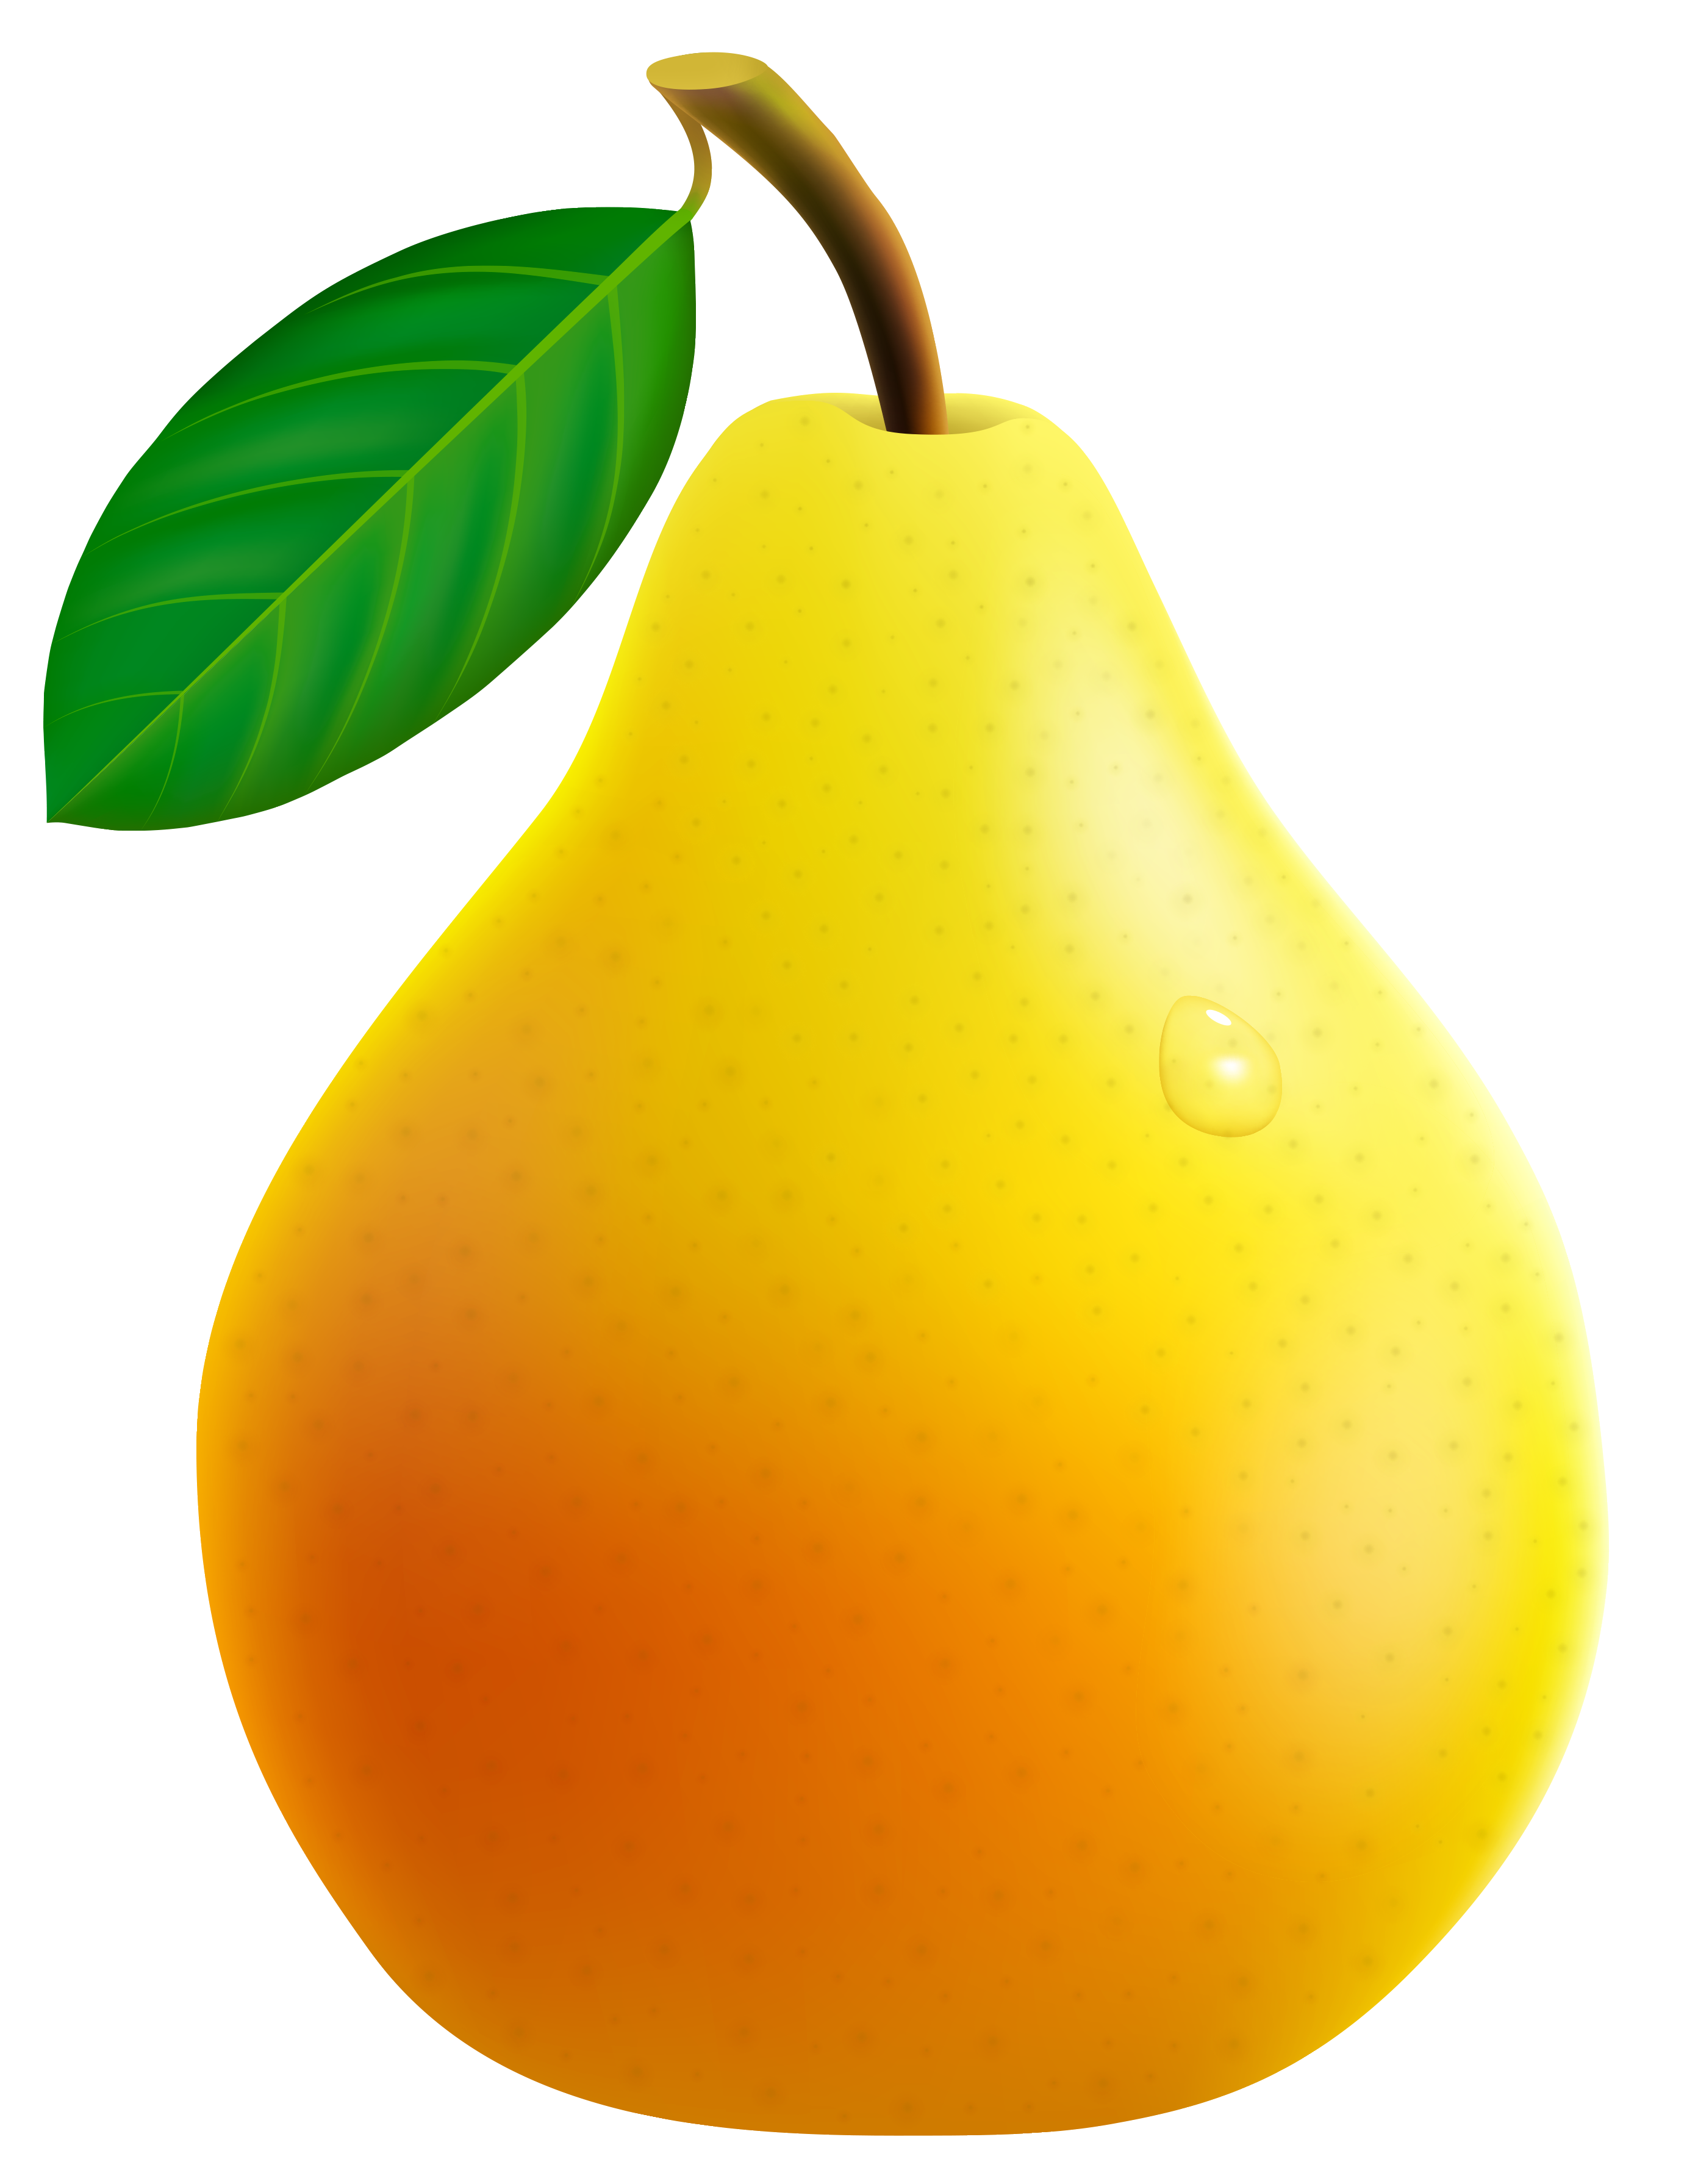 Pear Fruit Clip art.